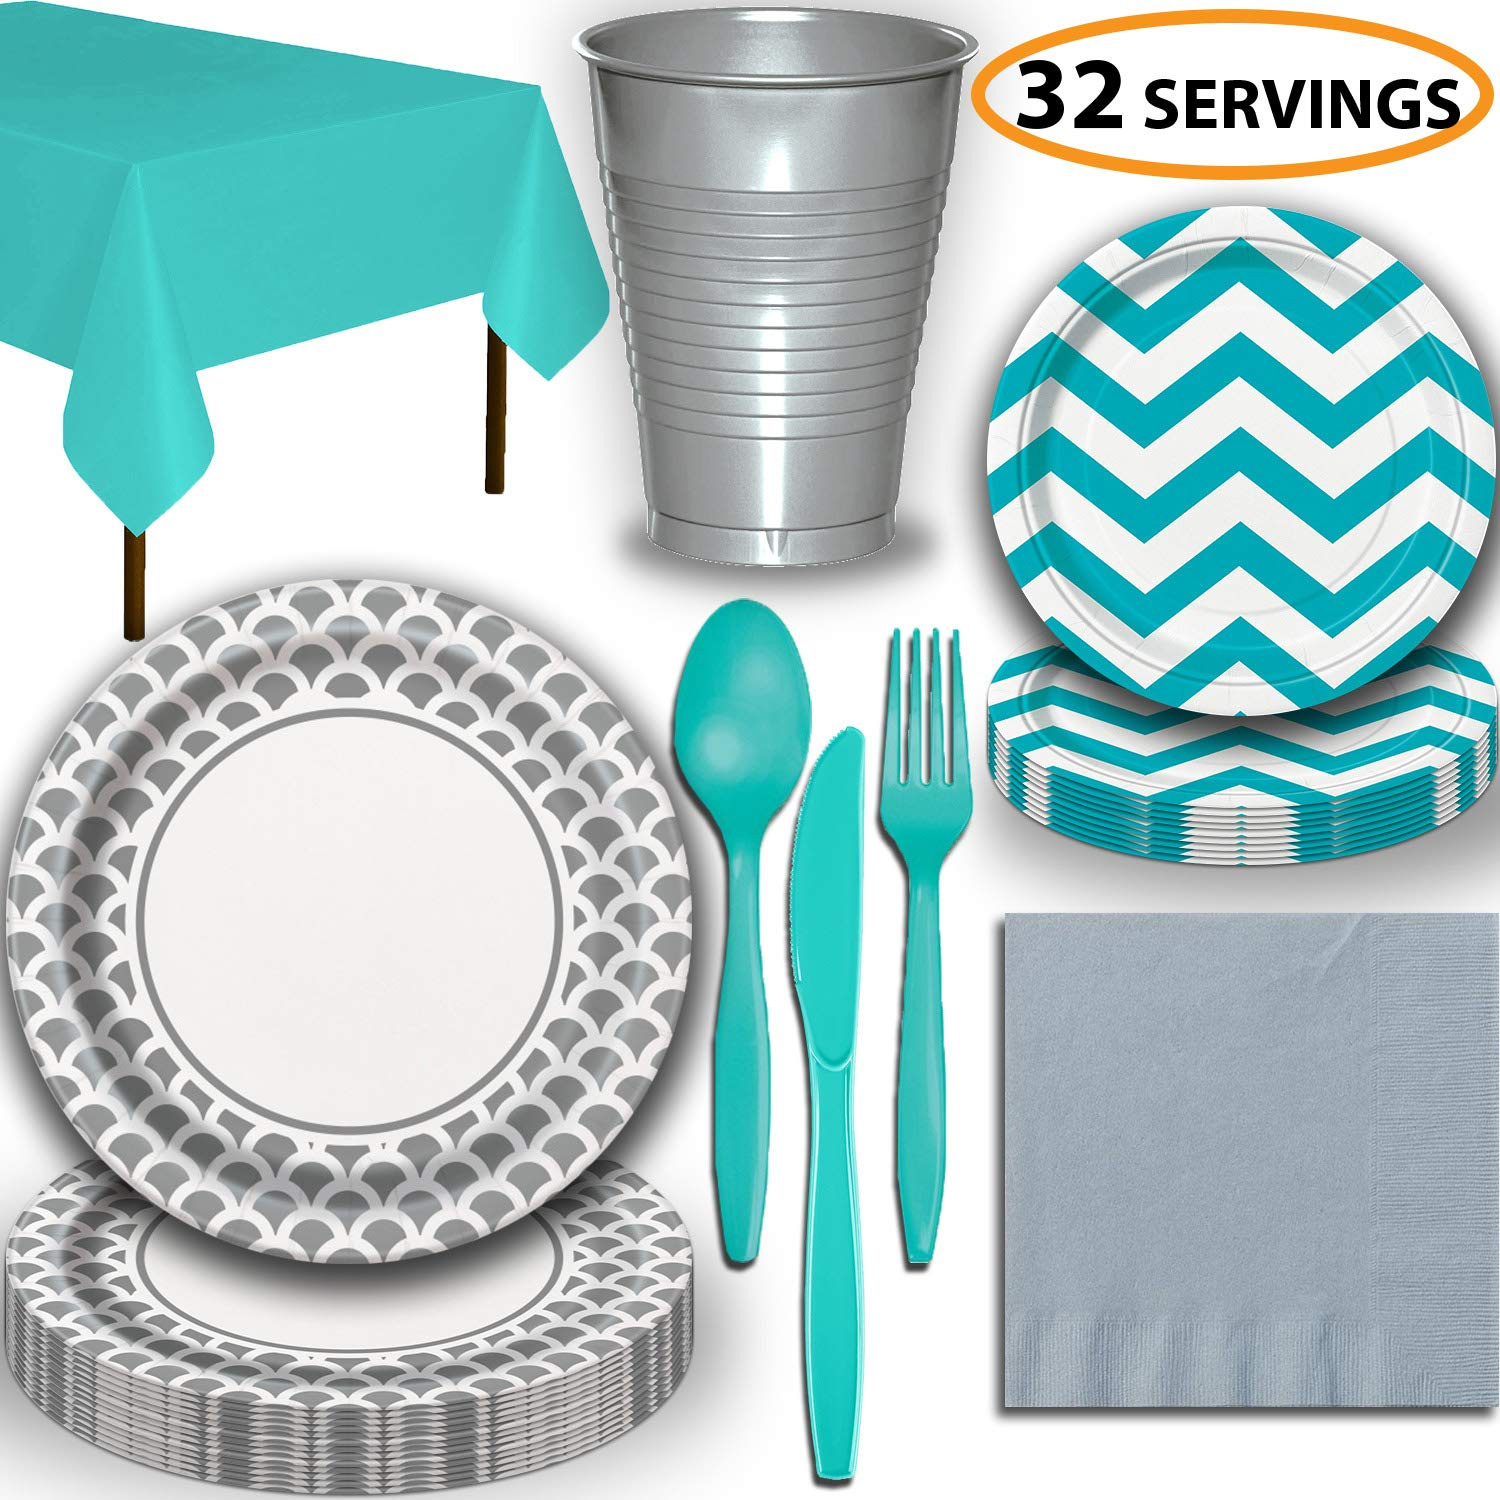 Disposable Tableware, 32 Sets - Silver and Caribbean Teal - Scallop Dinner Plates, Chevron Dessert Plates, Cups, Lunch Napkins, Cutlery, and Tablecloths: Premium Quality Party Supplies Set by HeroFiber (Image #1)